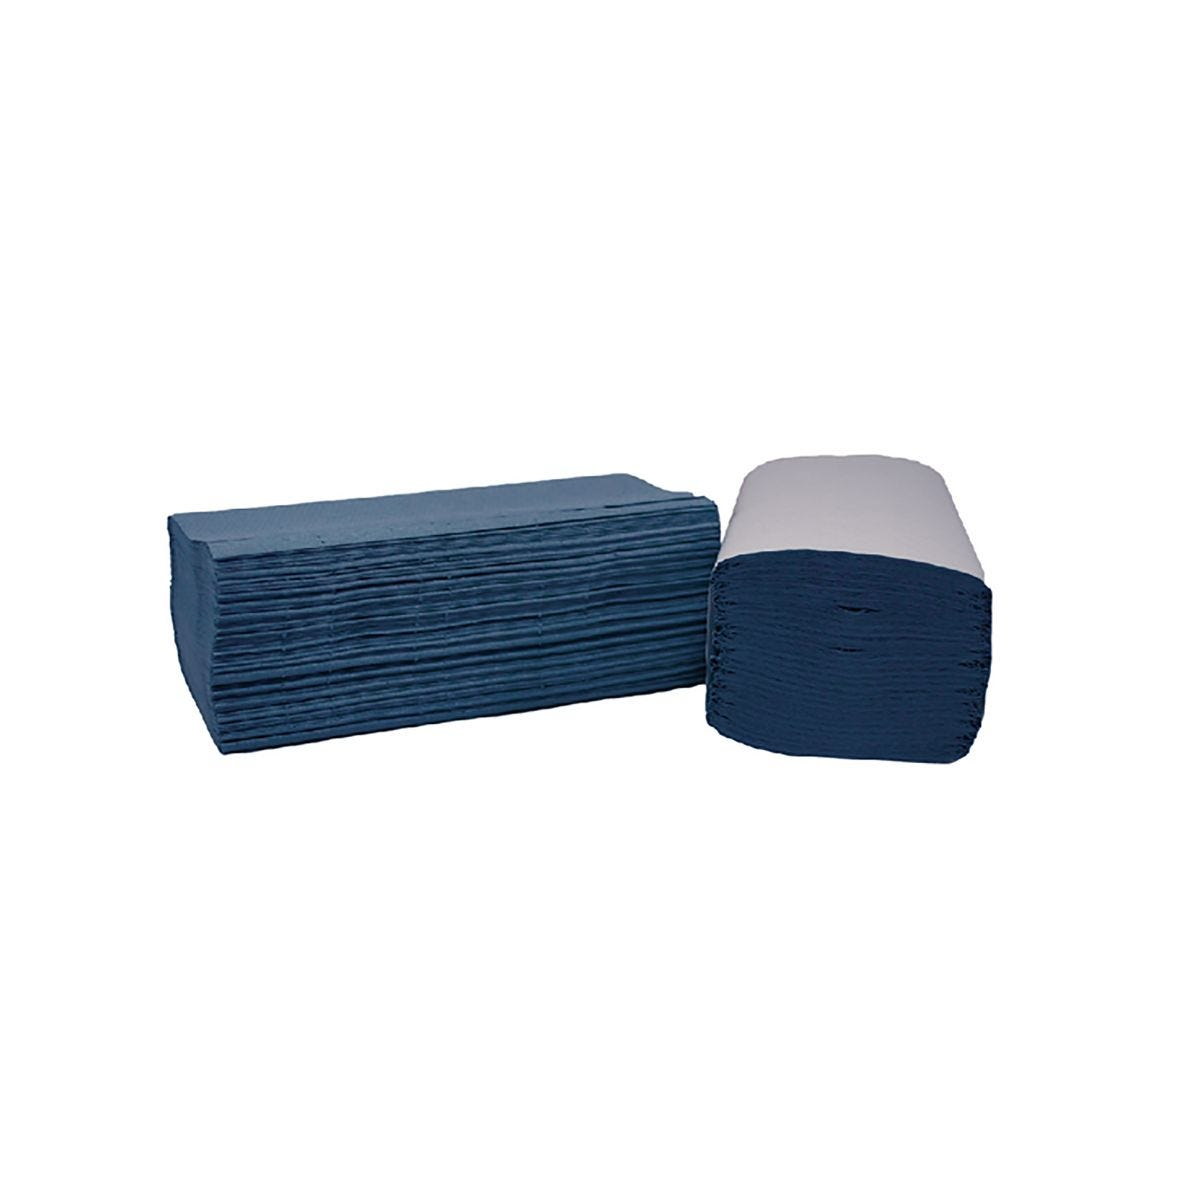 Image of 2Work I-Fold 1-Ply Hand Towels 190x250mm Pack of 3600 Blue, Blue